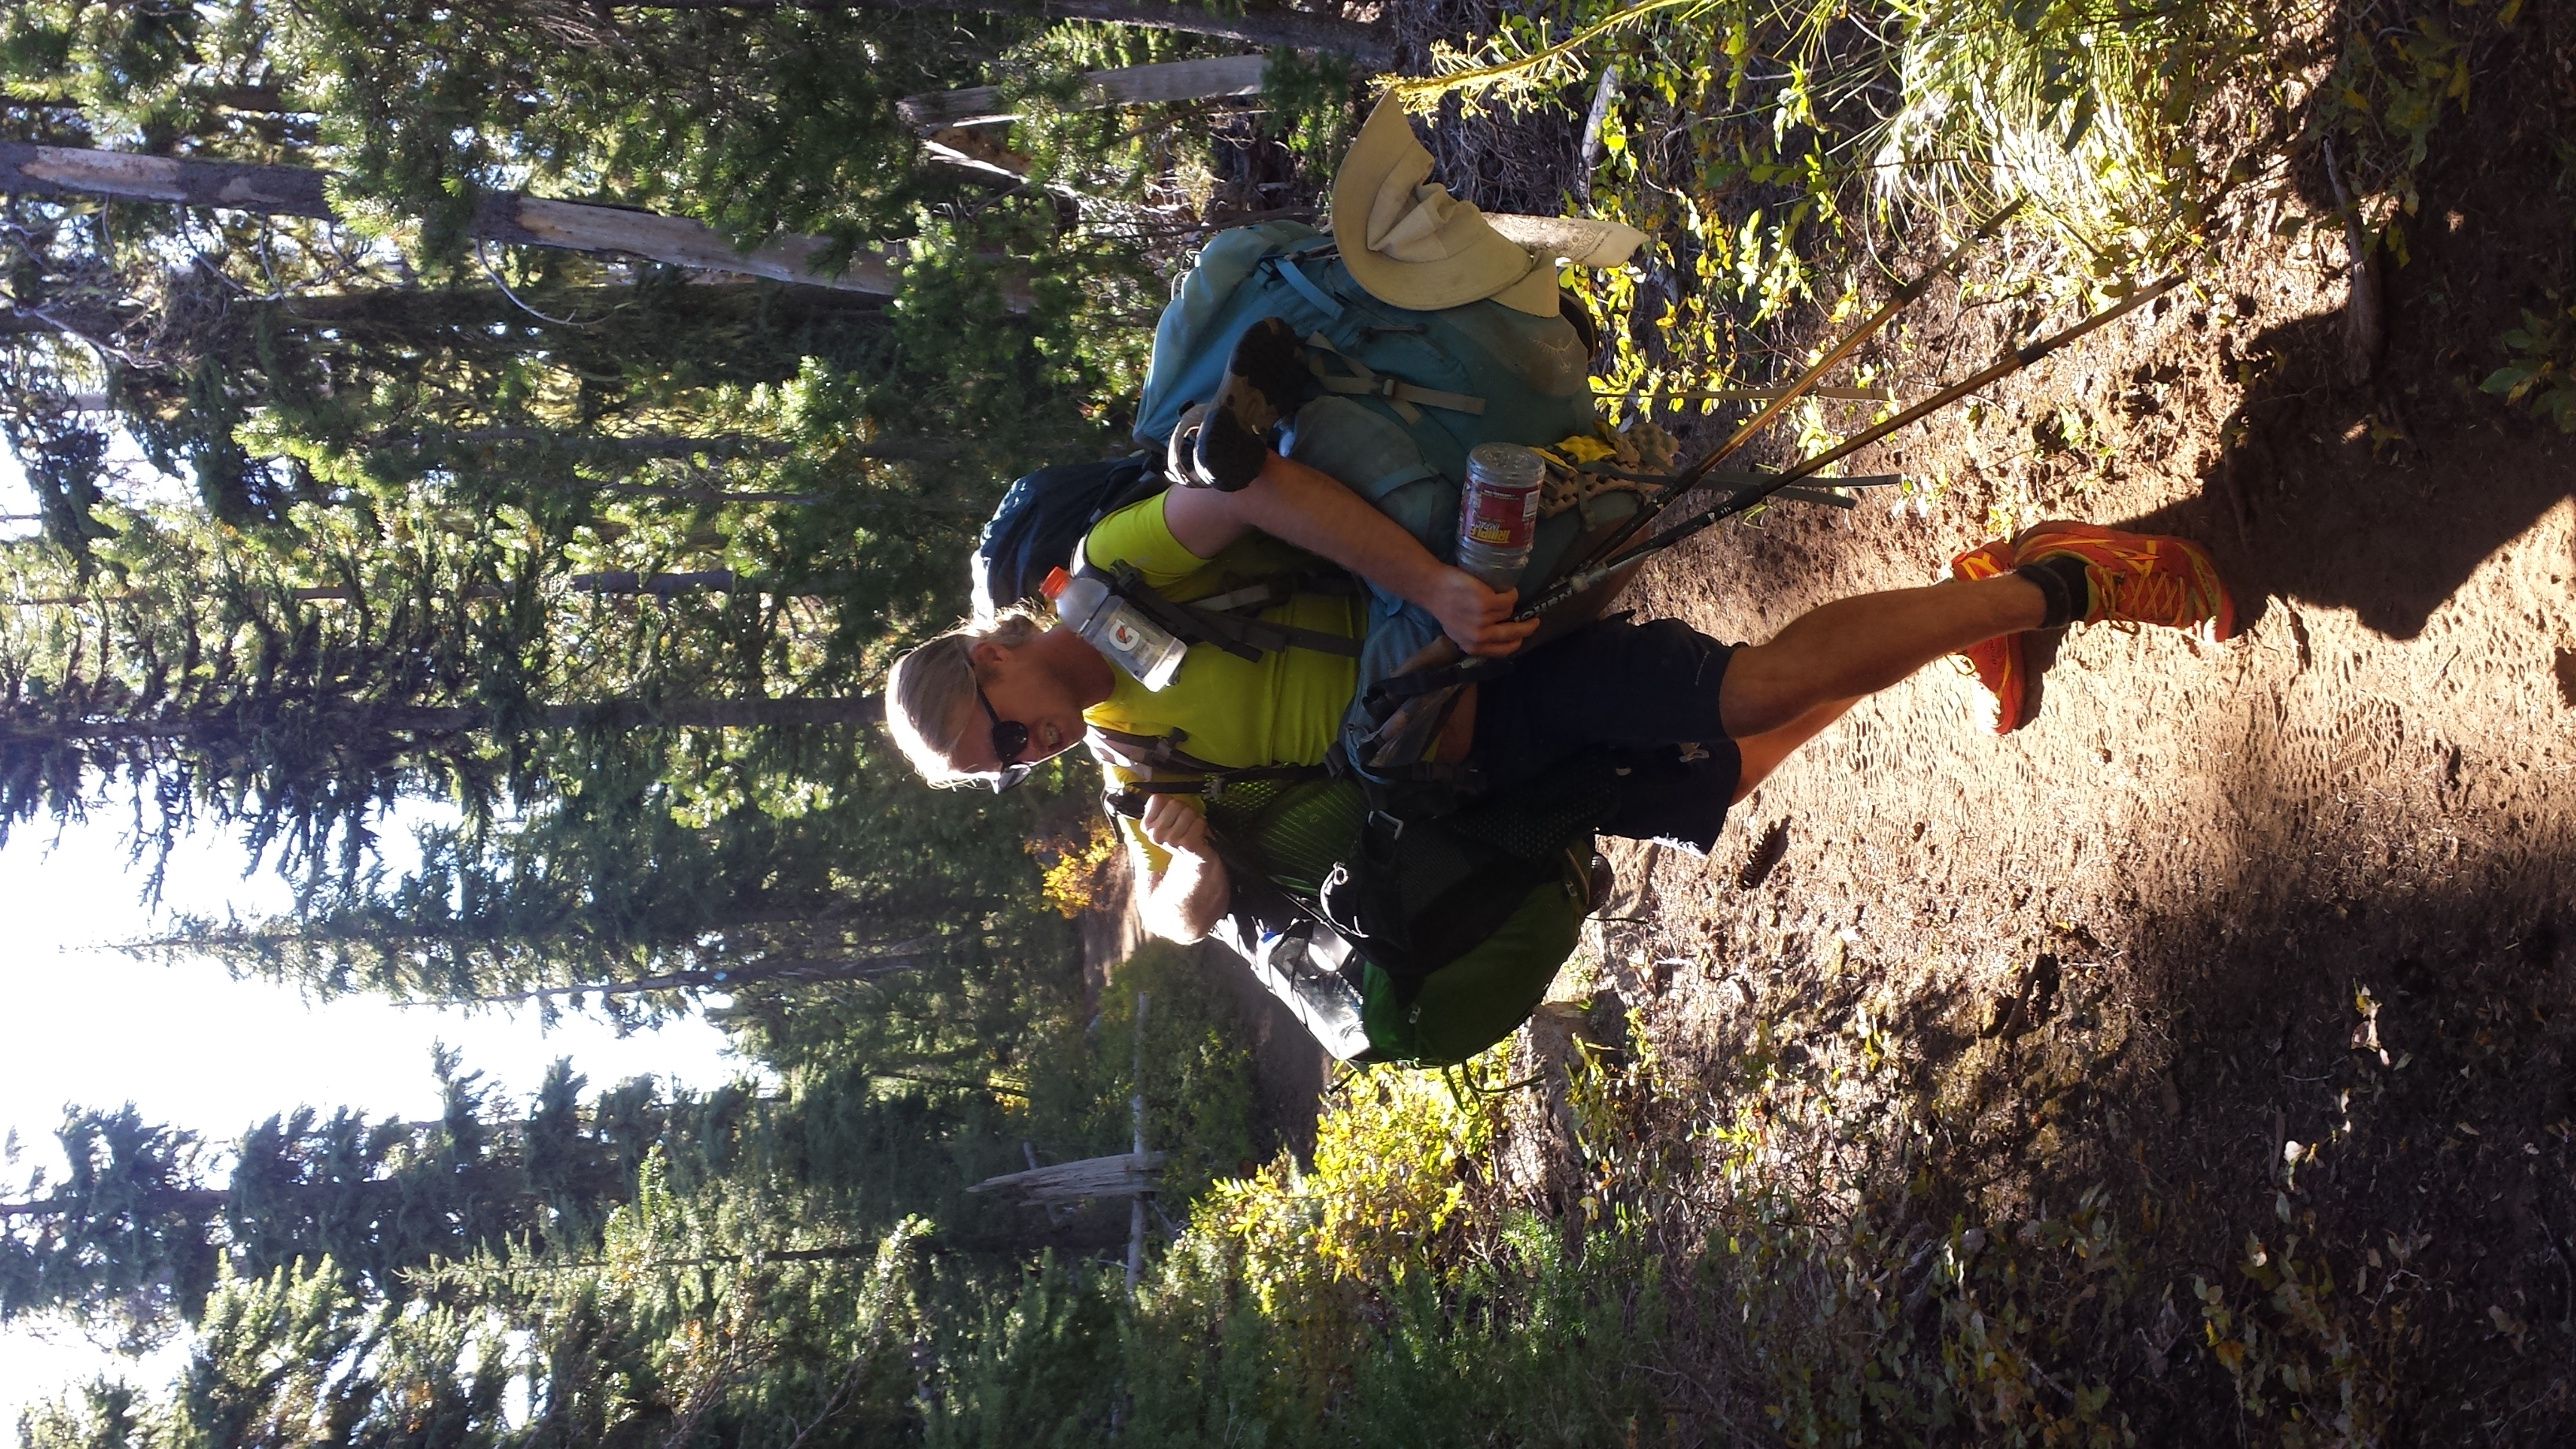 Dr Fierce carries his, my and Any Minute's packs to our shared camp.